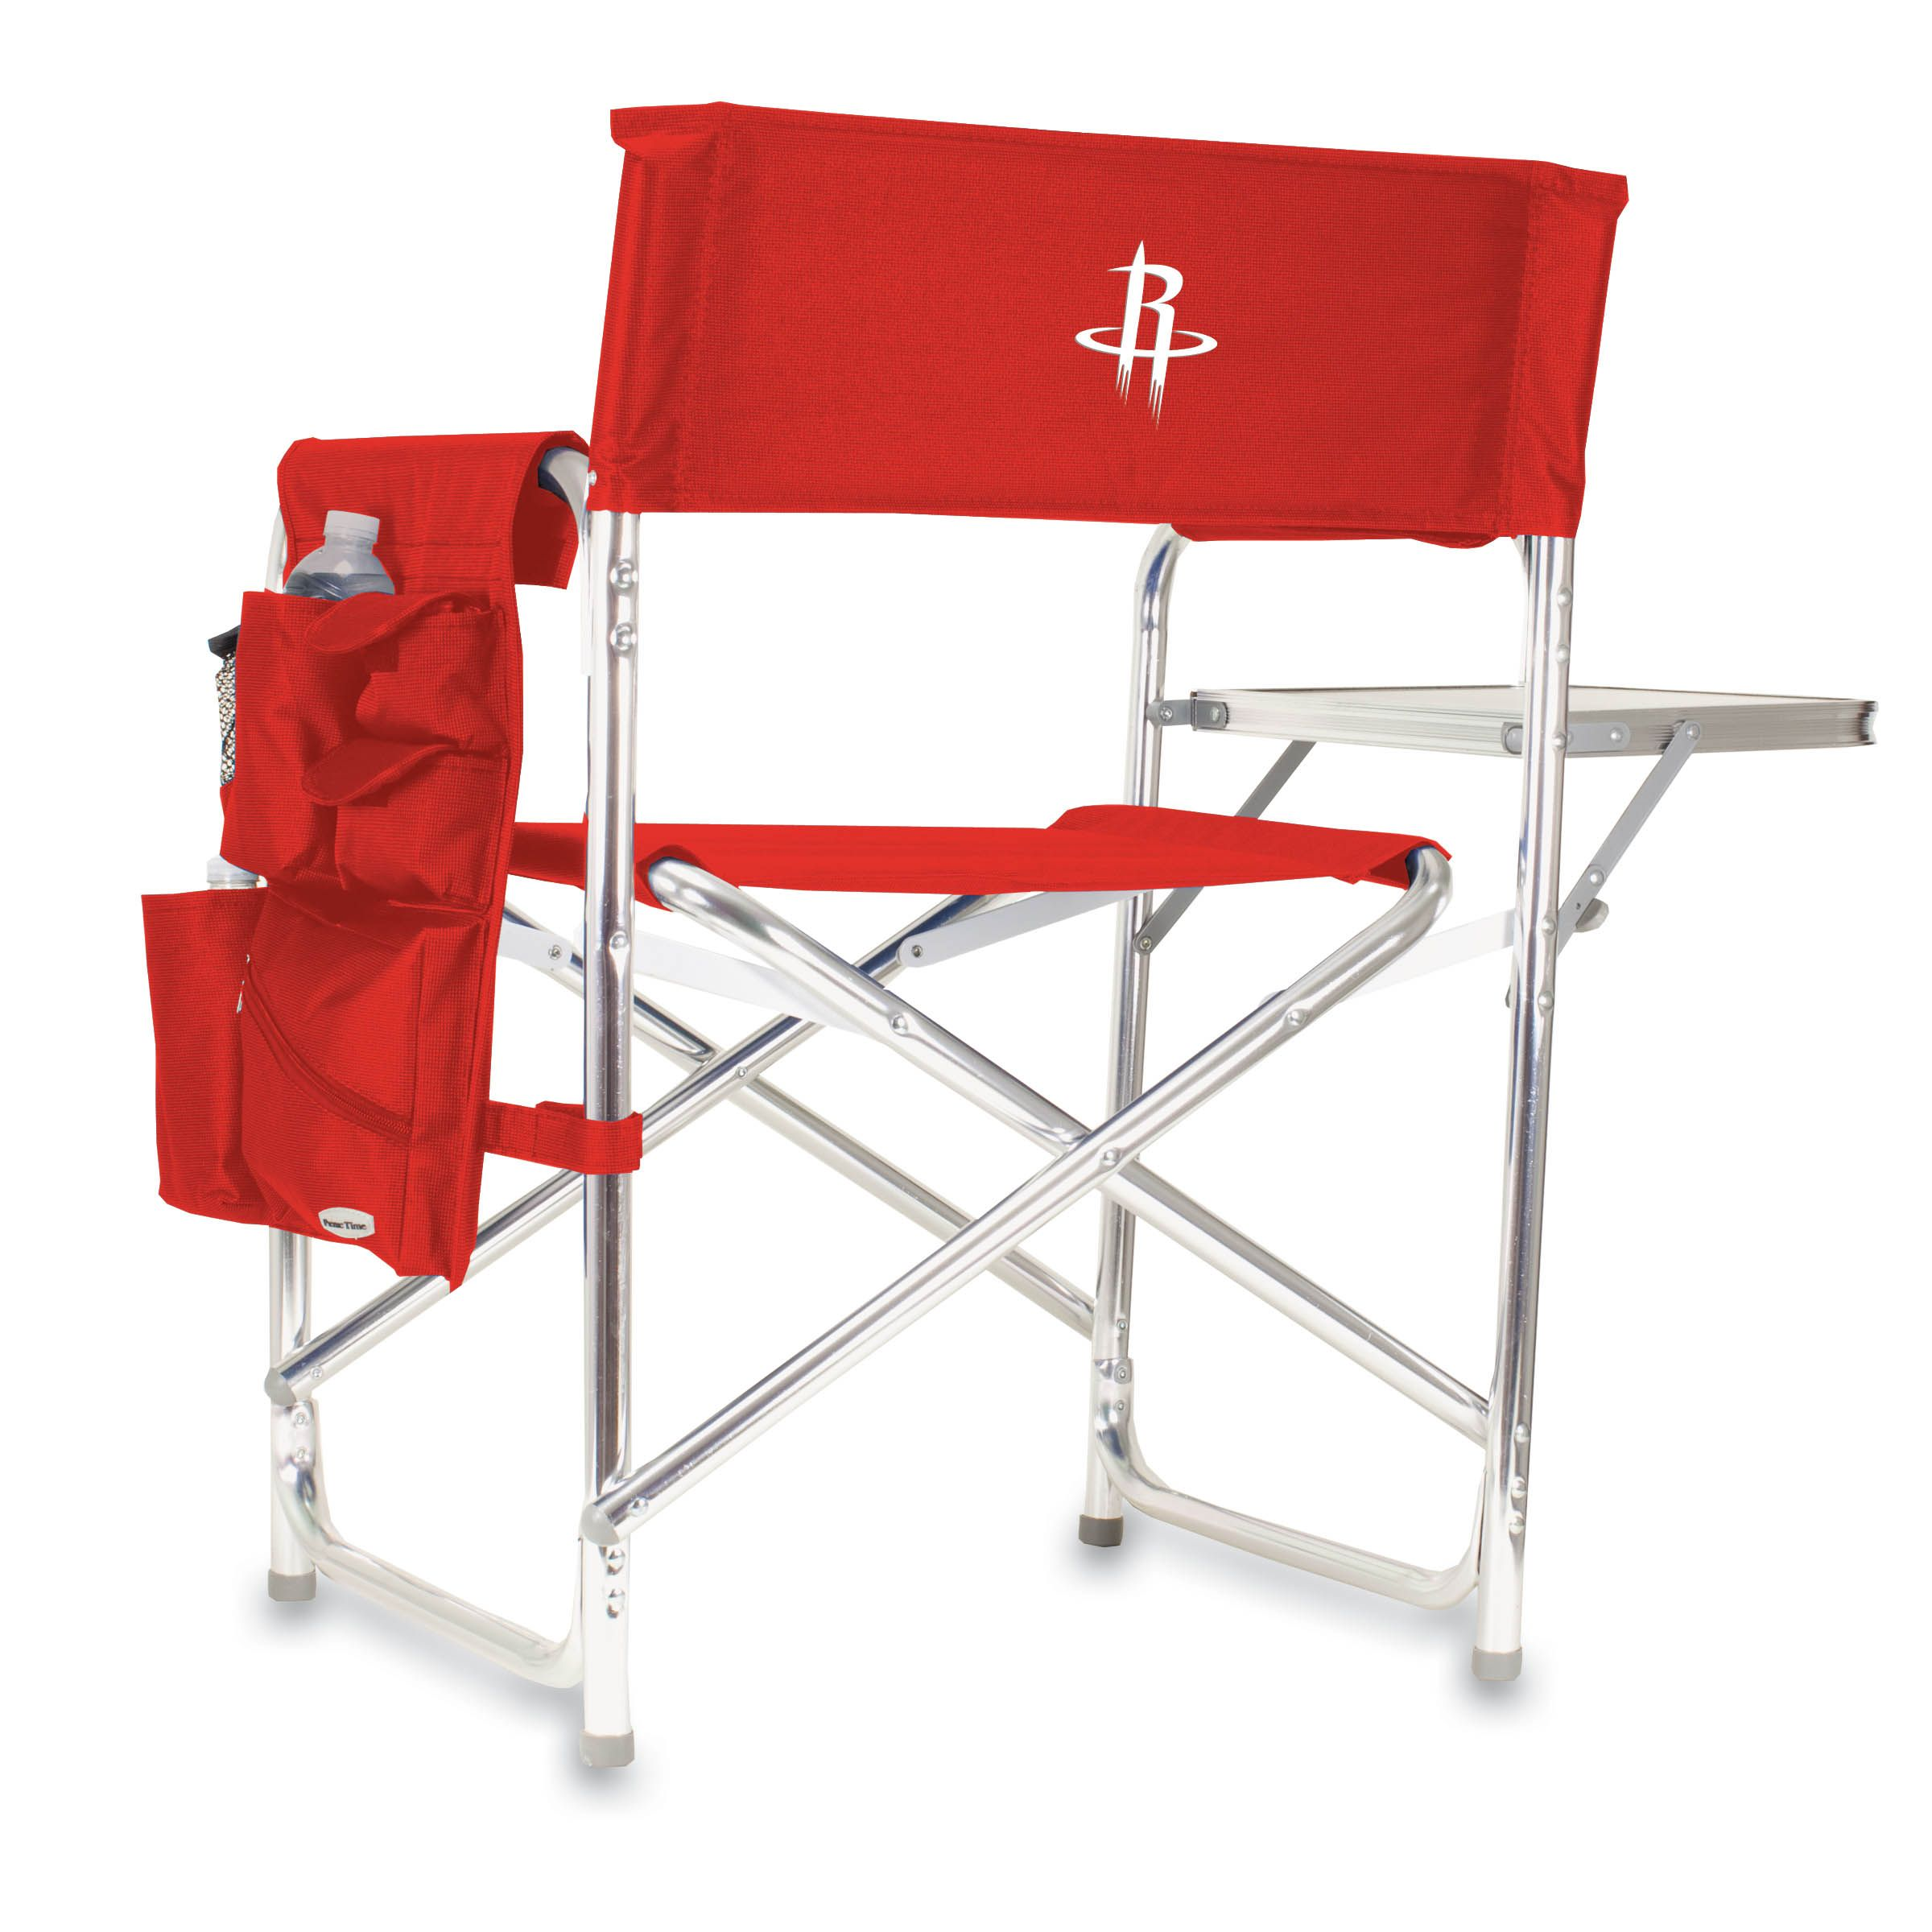 Picnic Time Nba Sports Chair Houston Rockets